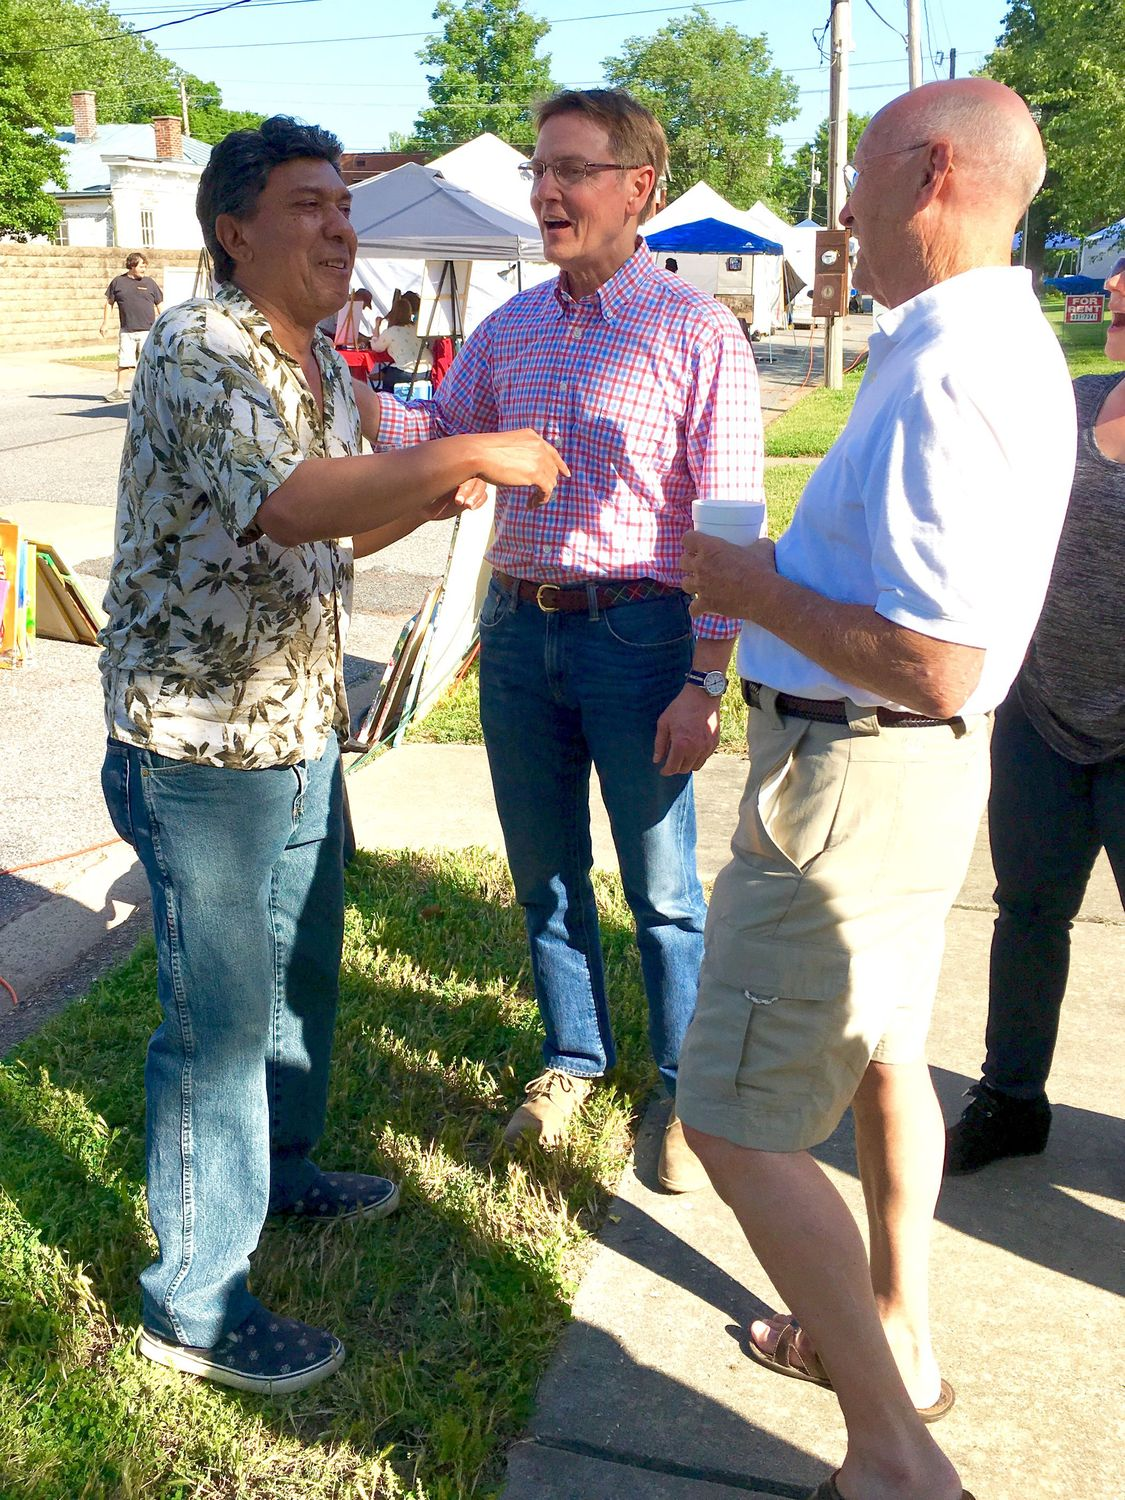 Enrique Gonzalez, left, and U.S. Senate candidate Jim Gray (D) at the Lower Town Arts & Music Festival. Photo: Cathy Lindsey